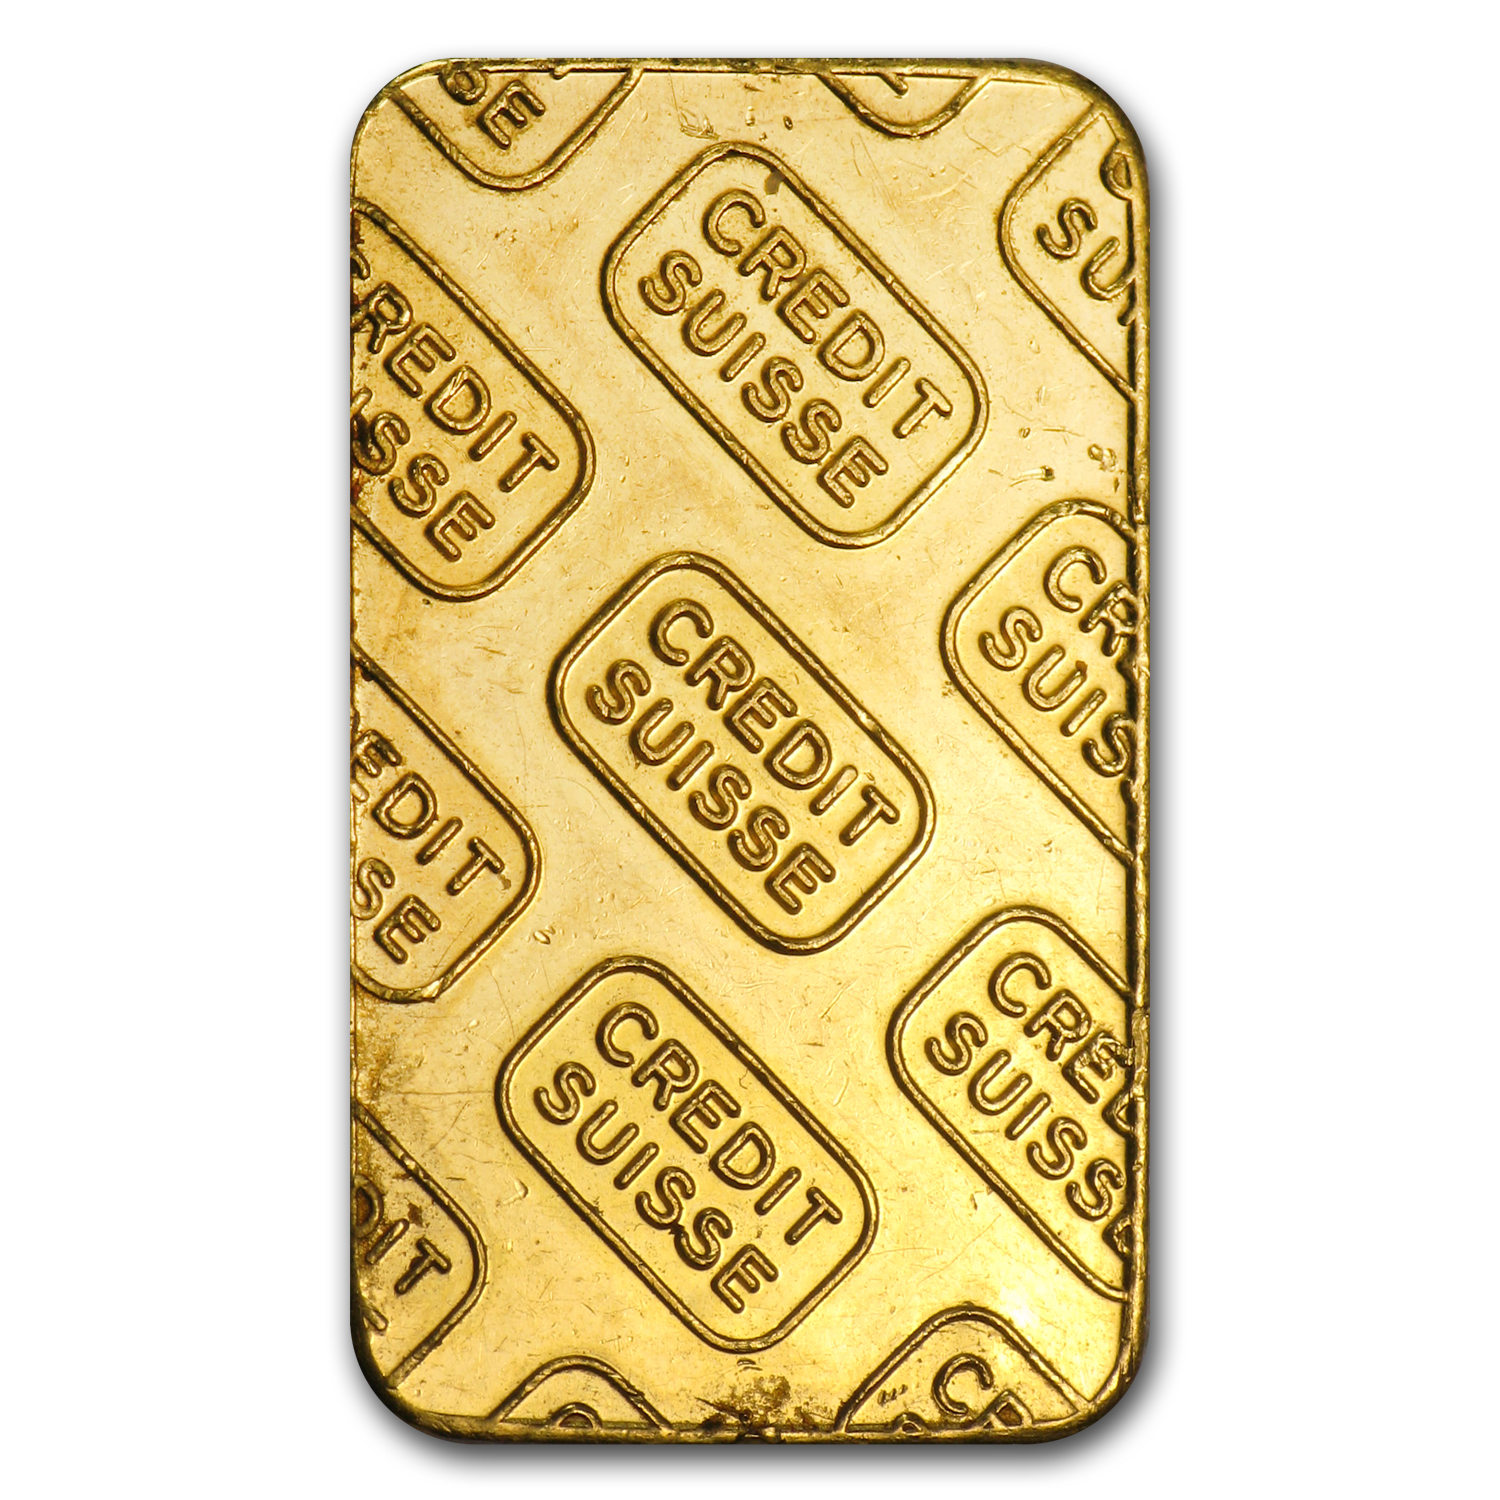 5 gram Gold Bars - Secondary Market